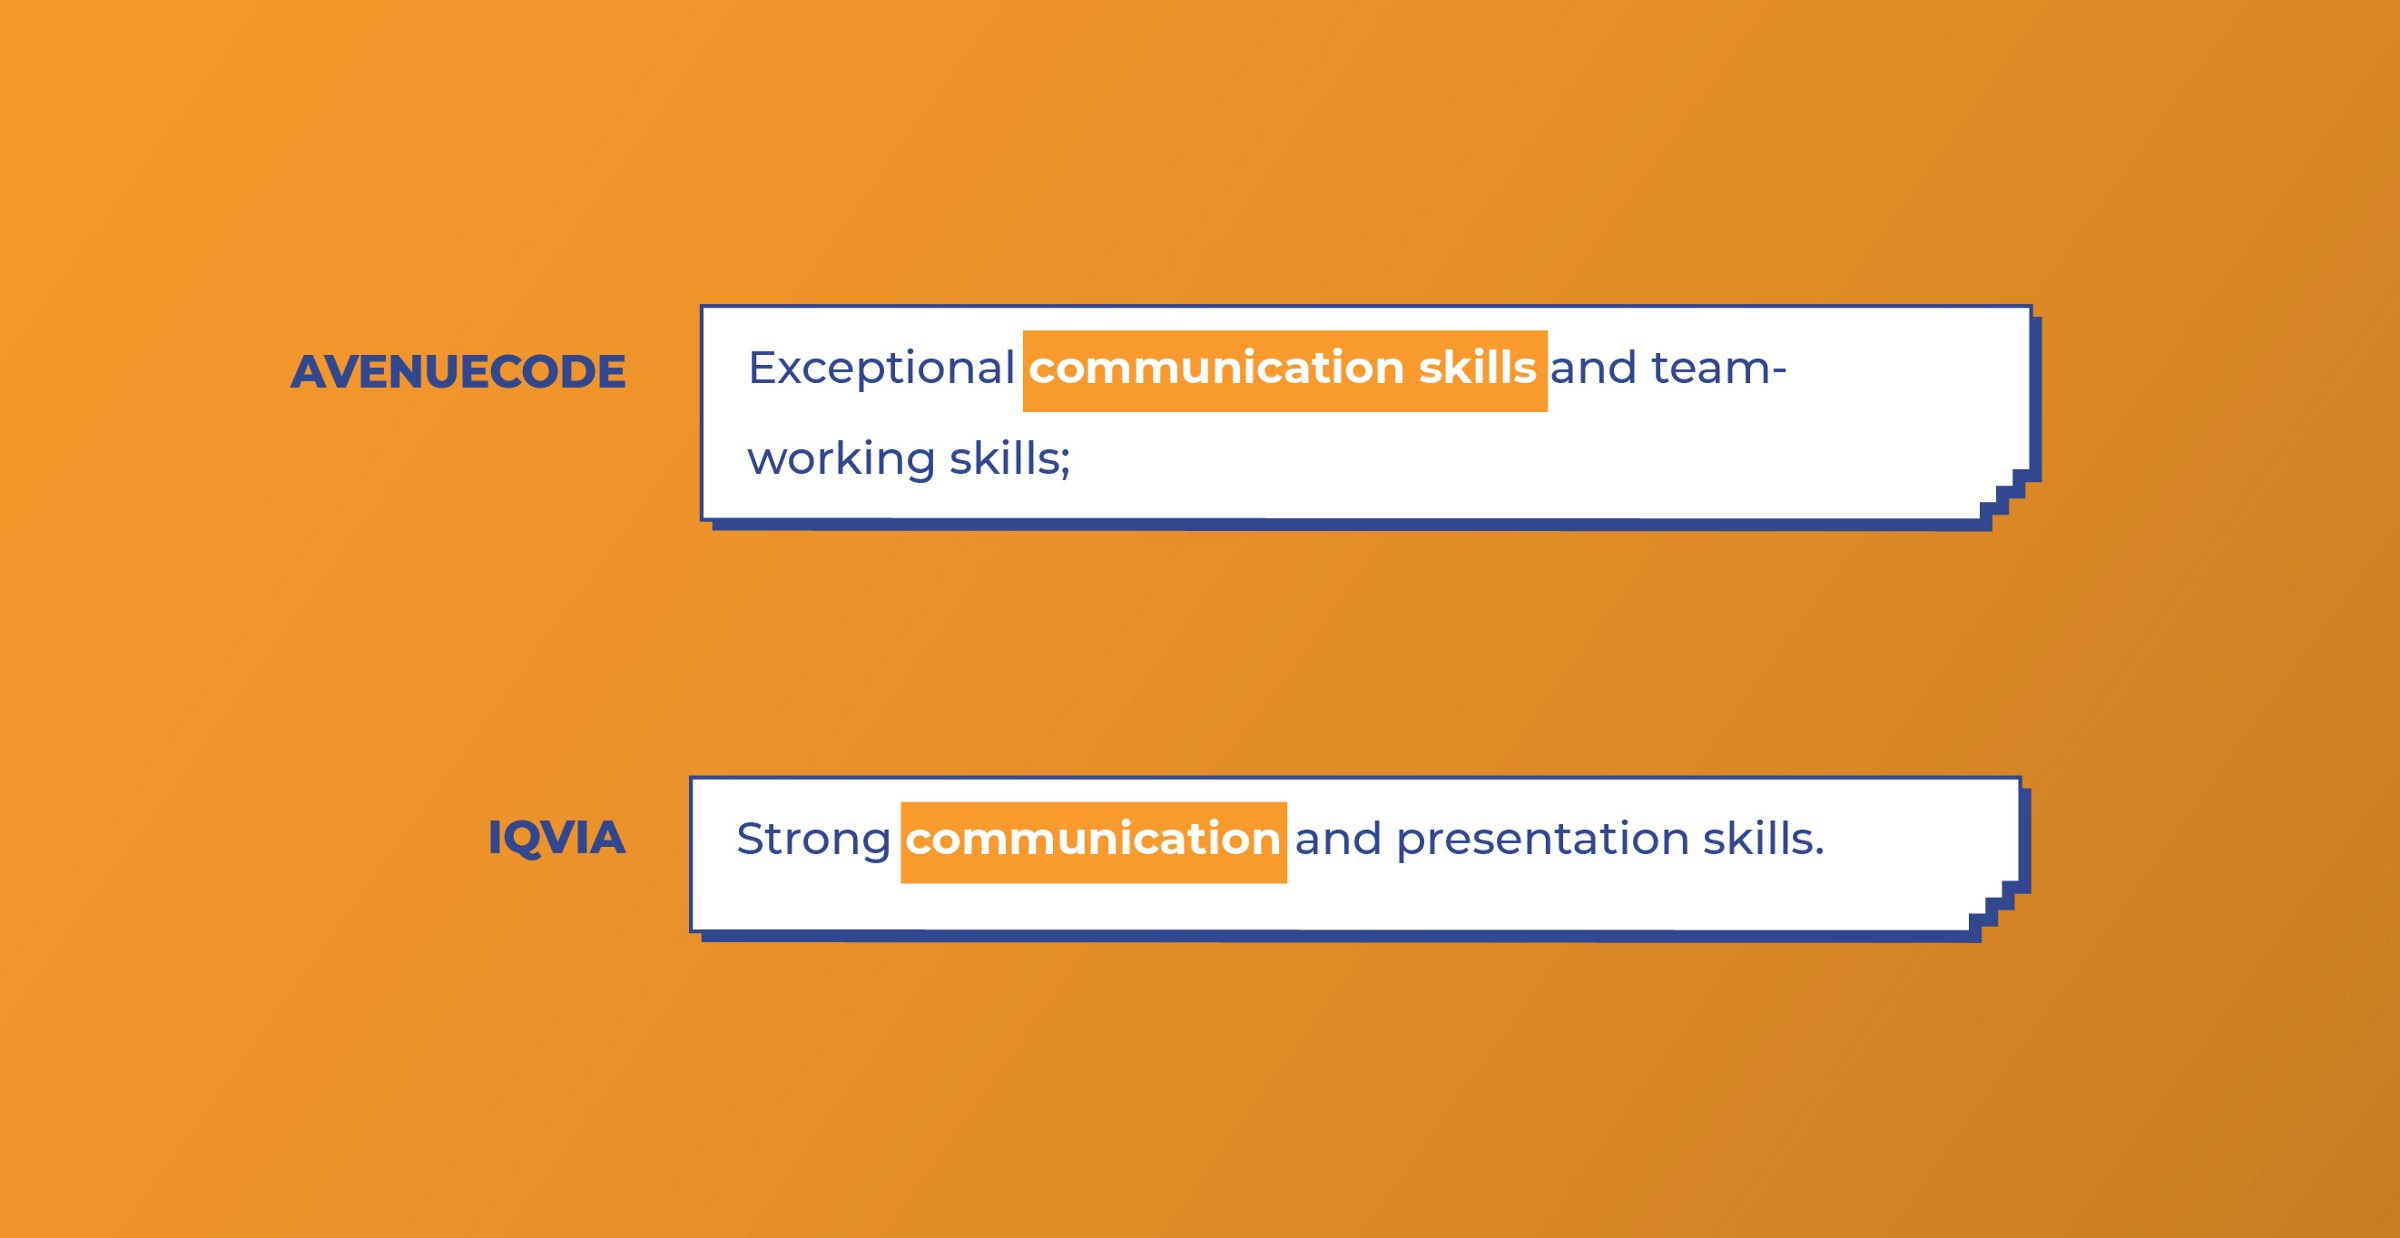 Avenuecode and IQVIA look for Communication skills from UI designers